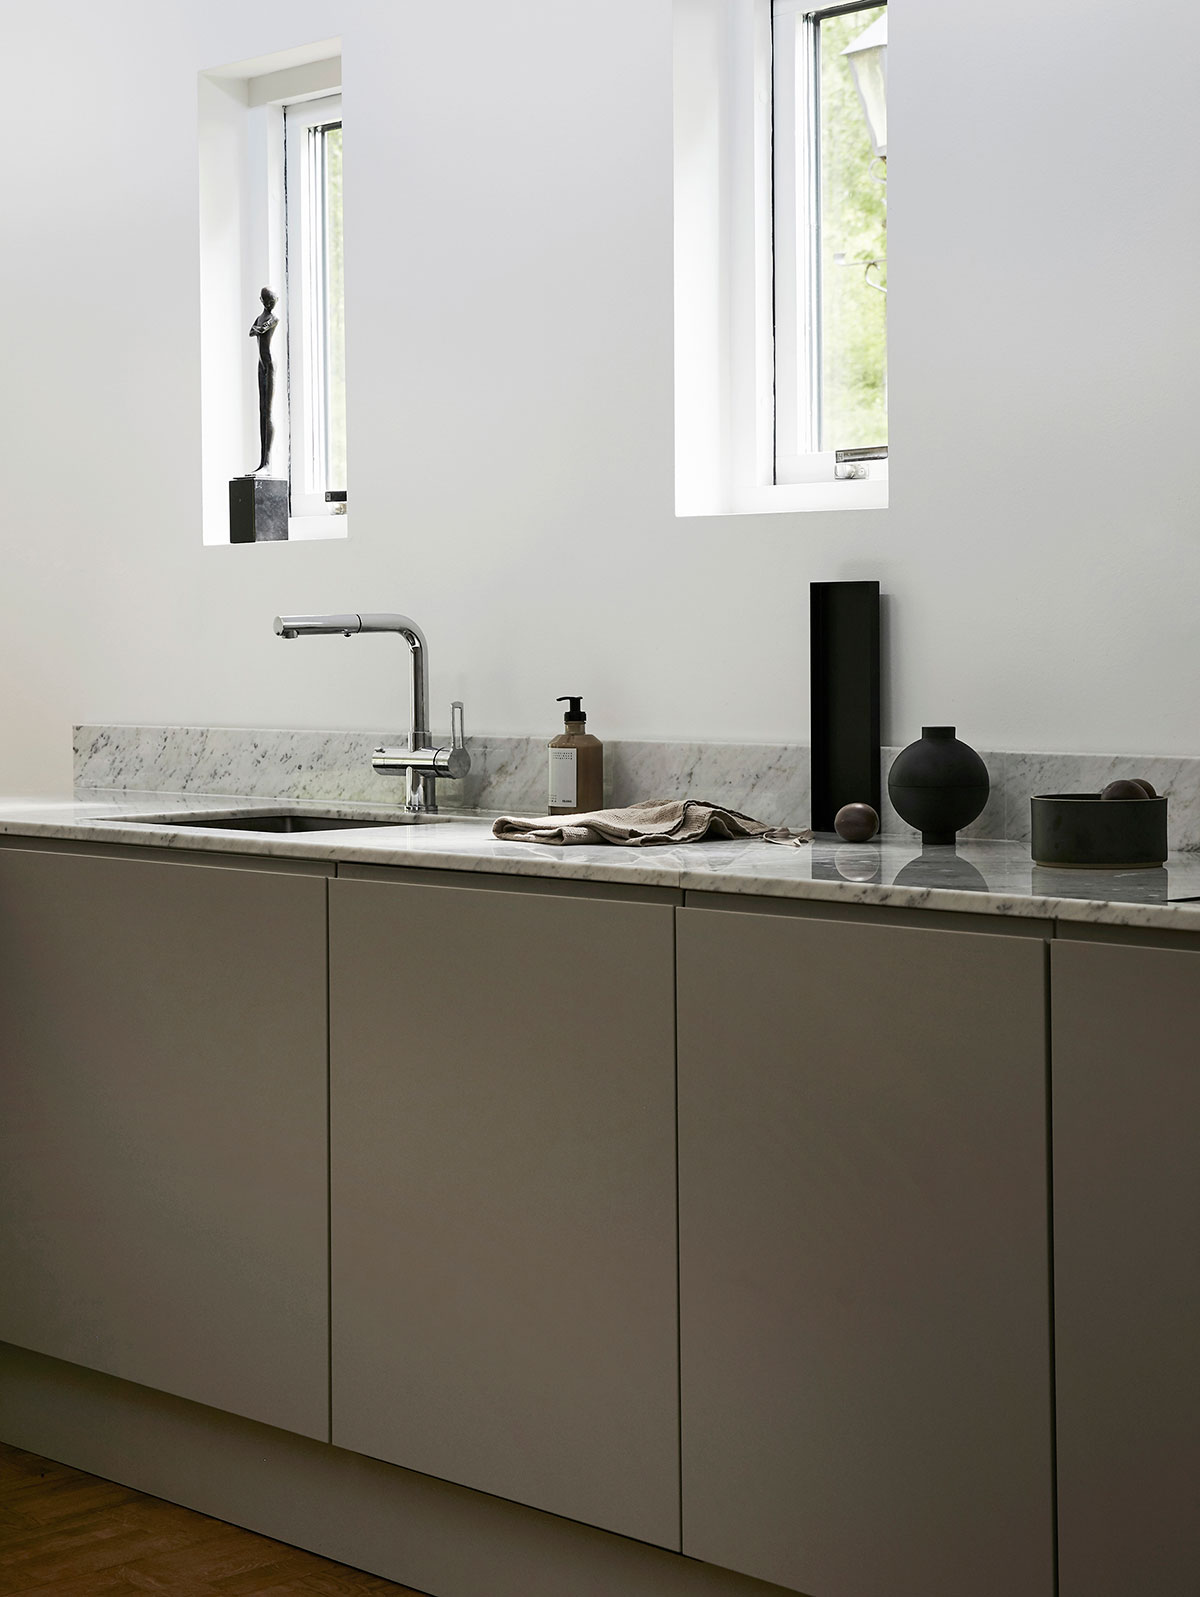 Minimalist grey kitchen in modern Scandinavian design with marble countertop